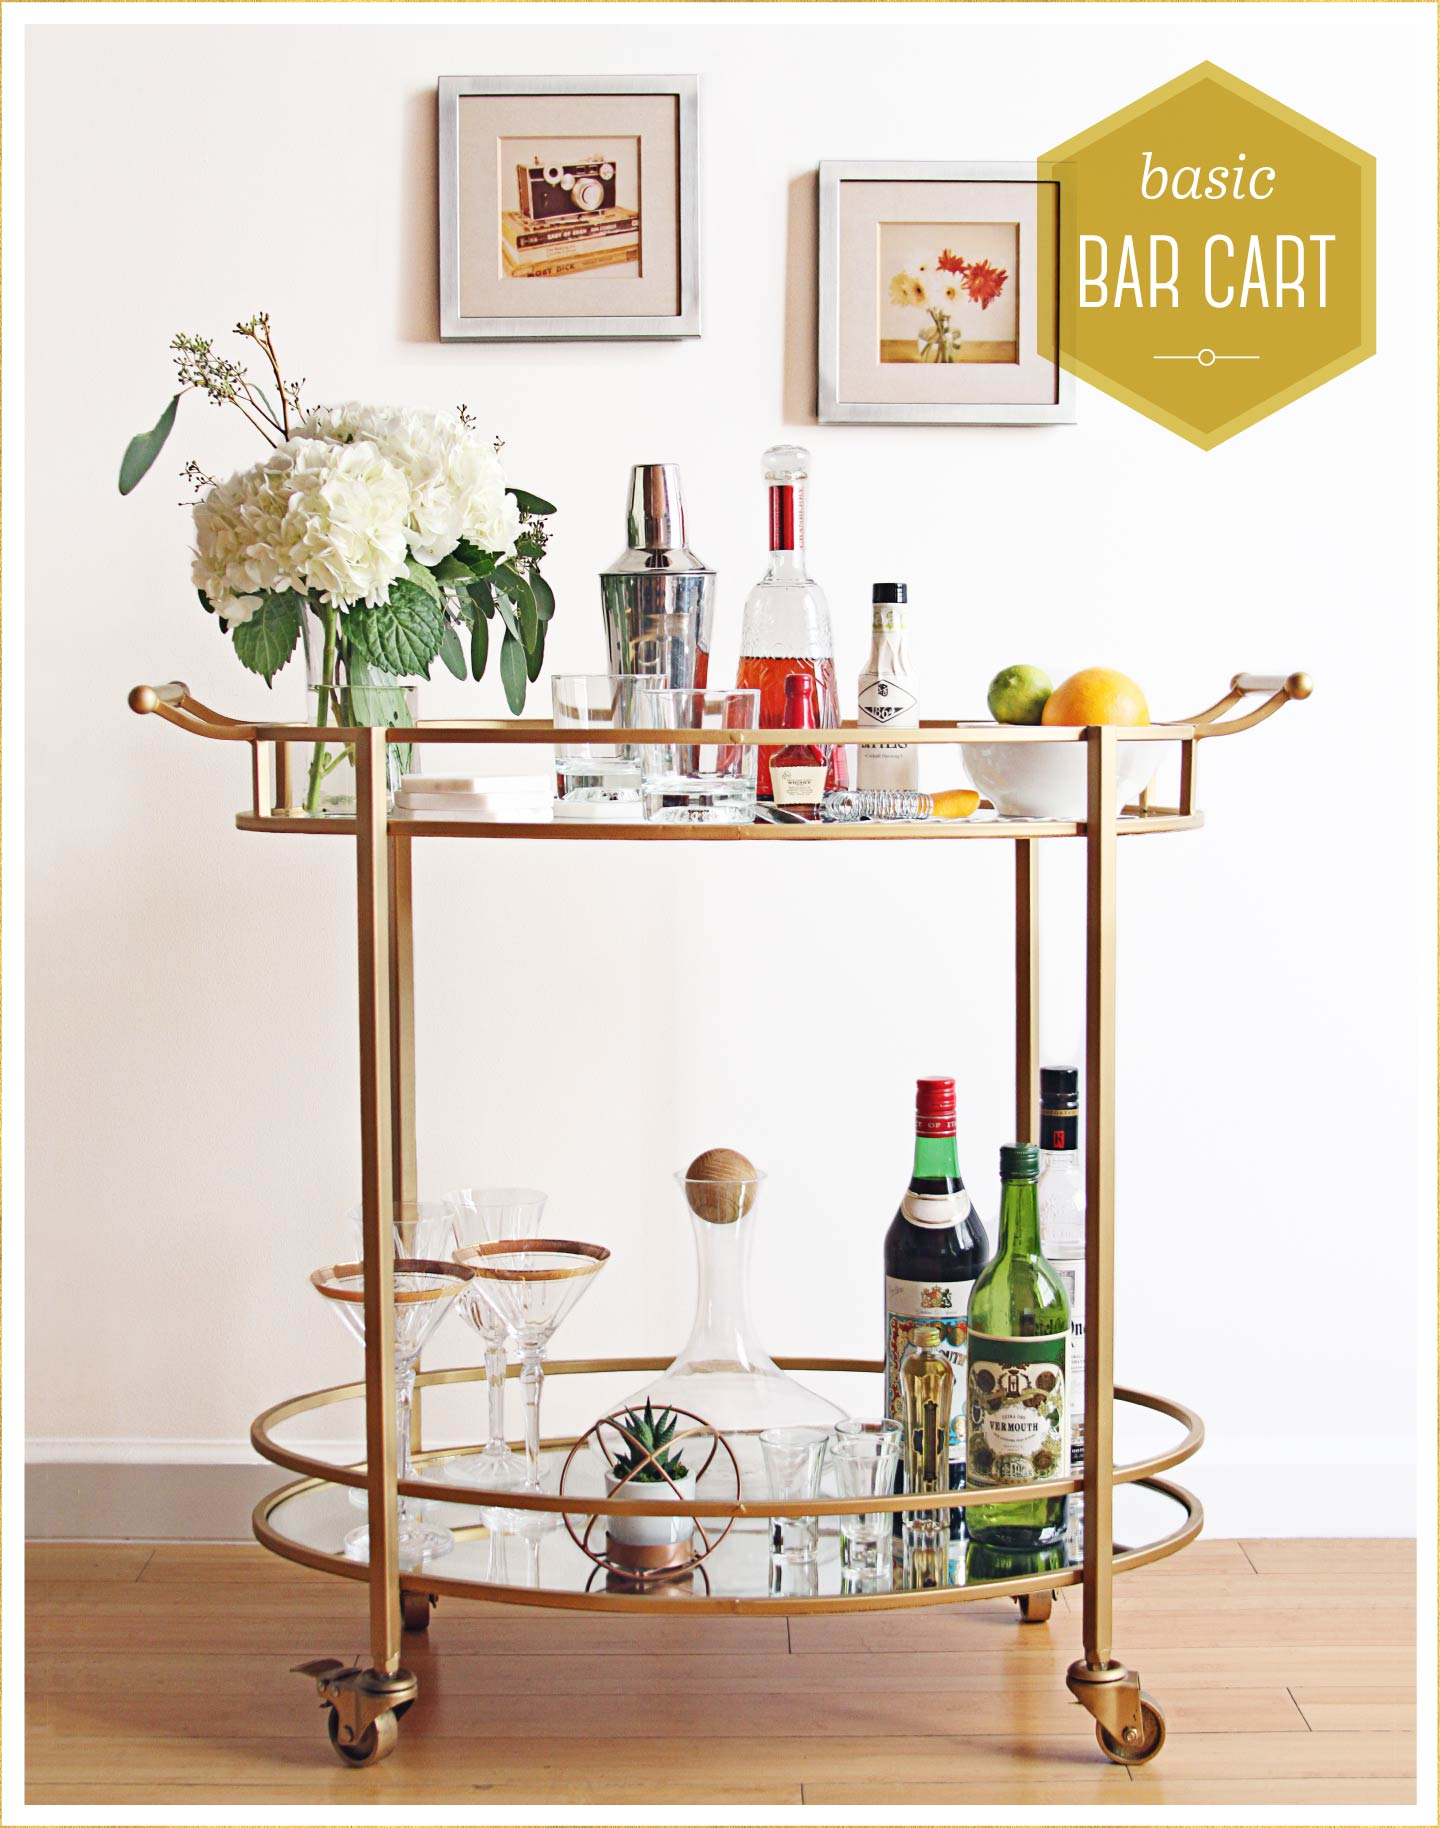 Basic Bar Cart 1